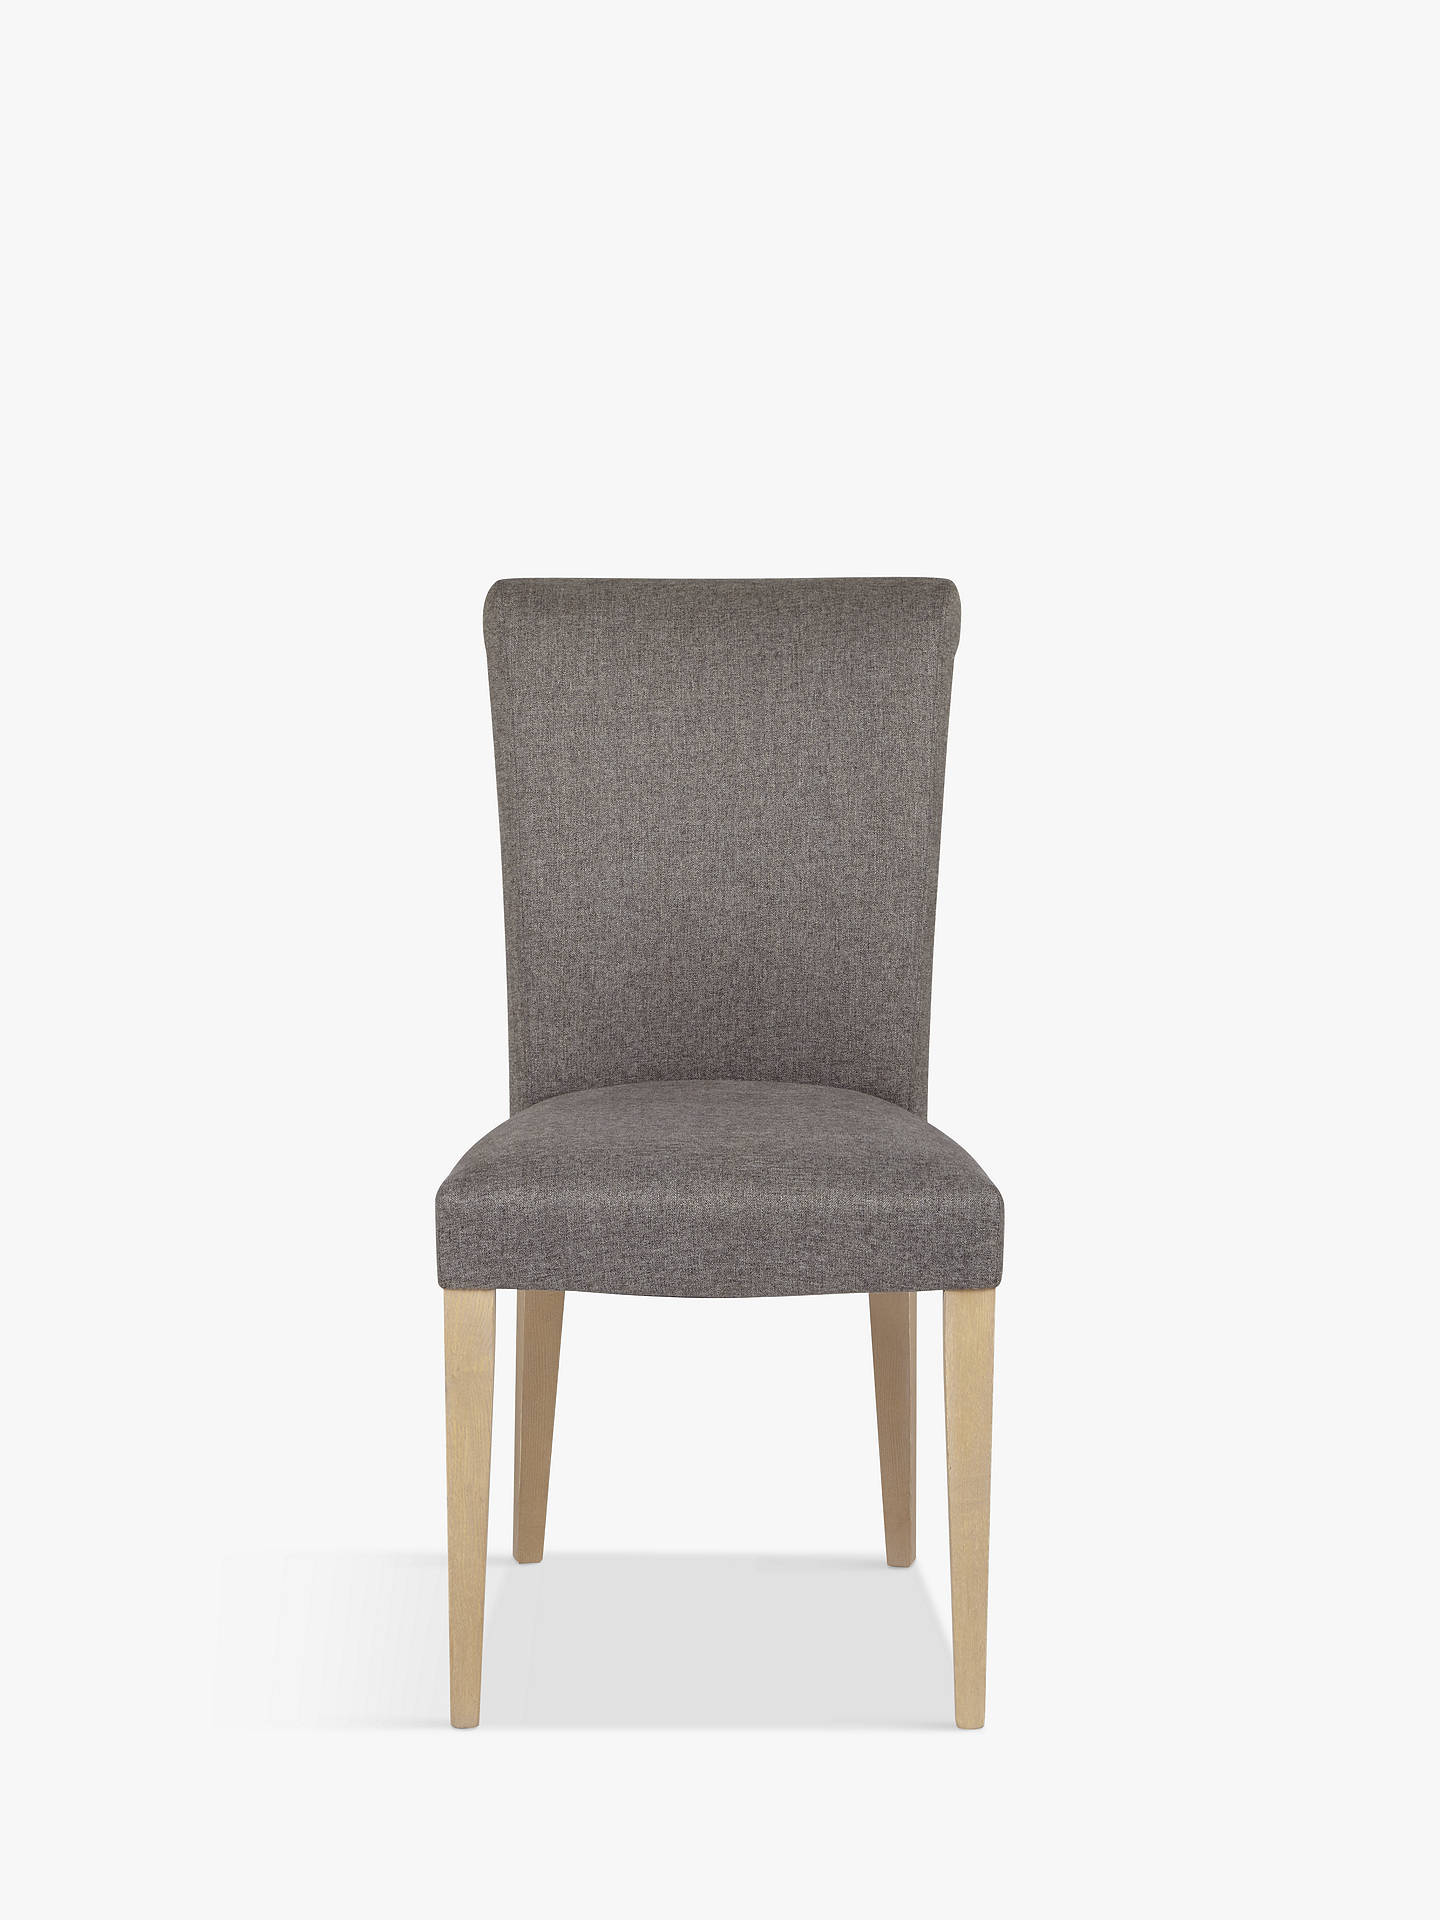 BuyJohn Lewis & Partners Evelyn Chair, Vietto Grey Online at johnlewis.com